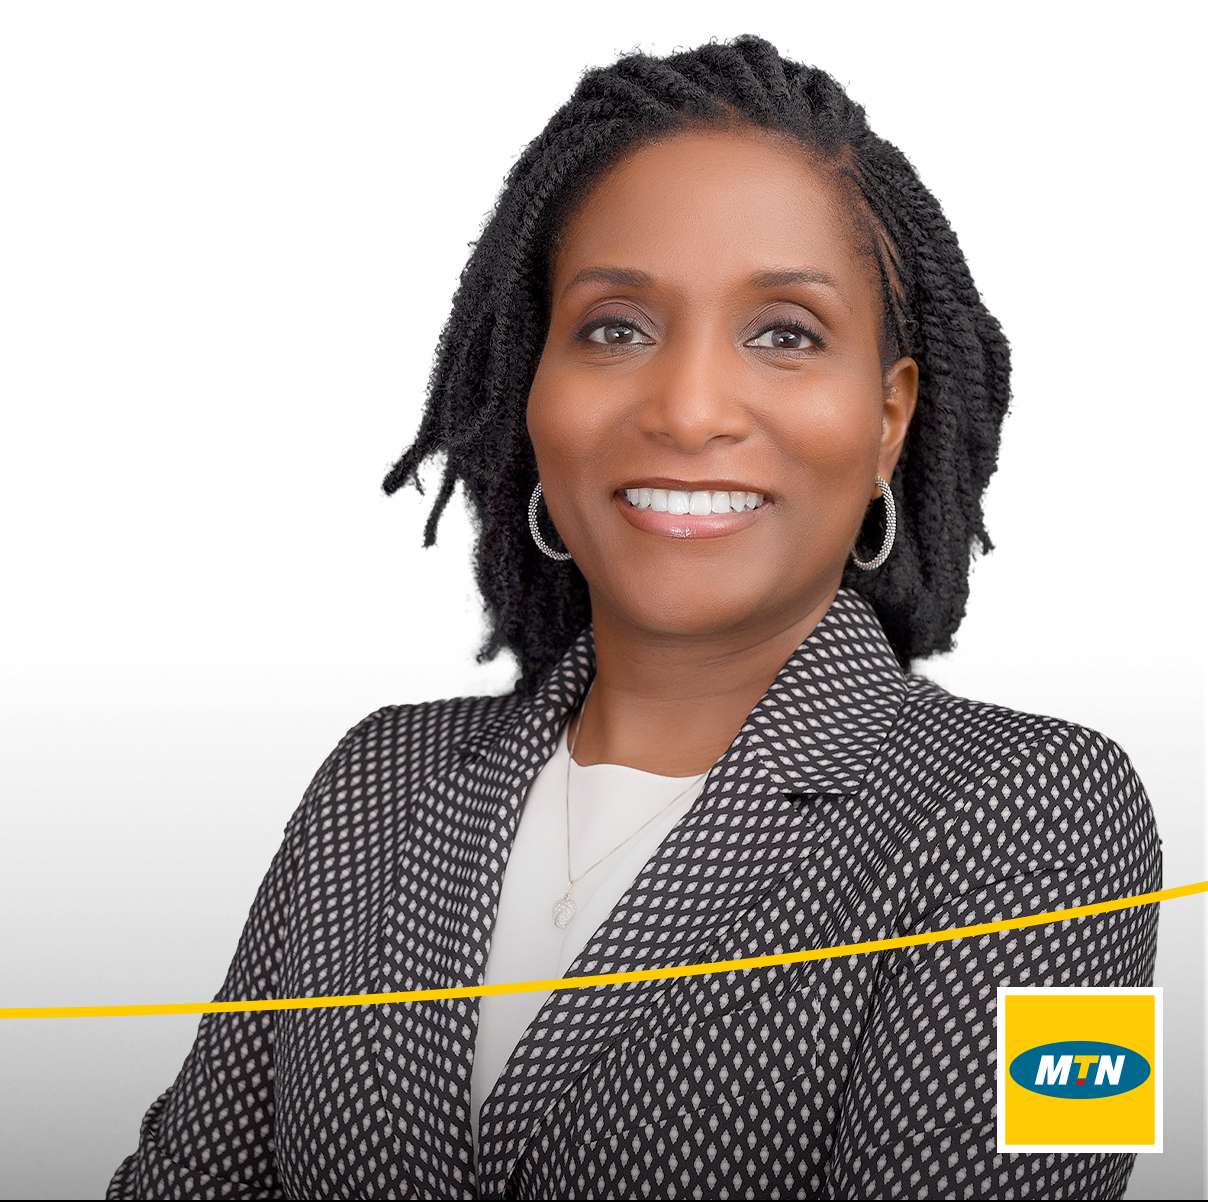 MTN Group advances women leadership with new MTN Guinea-Bissau CEO